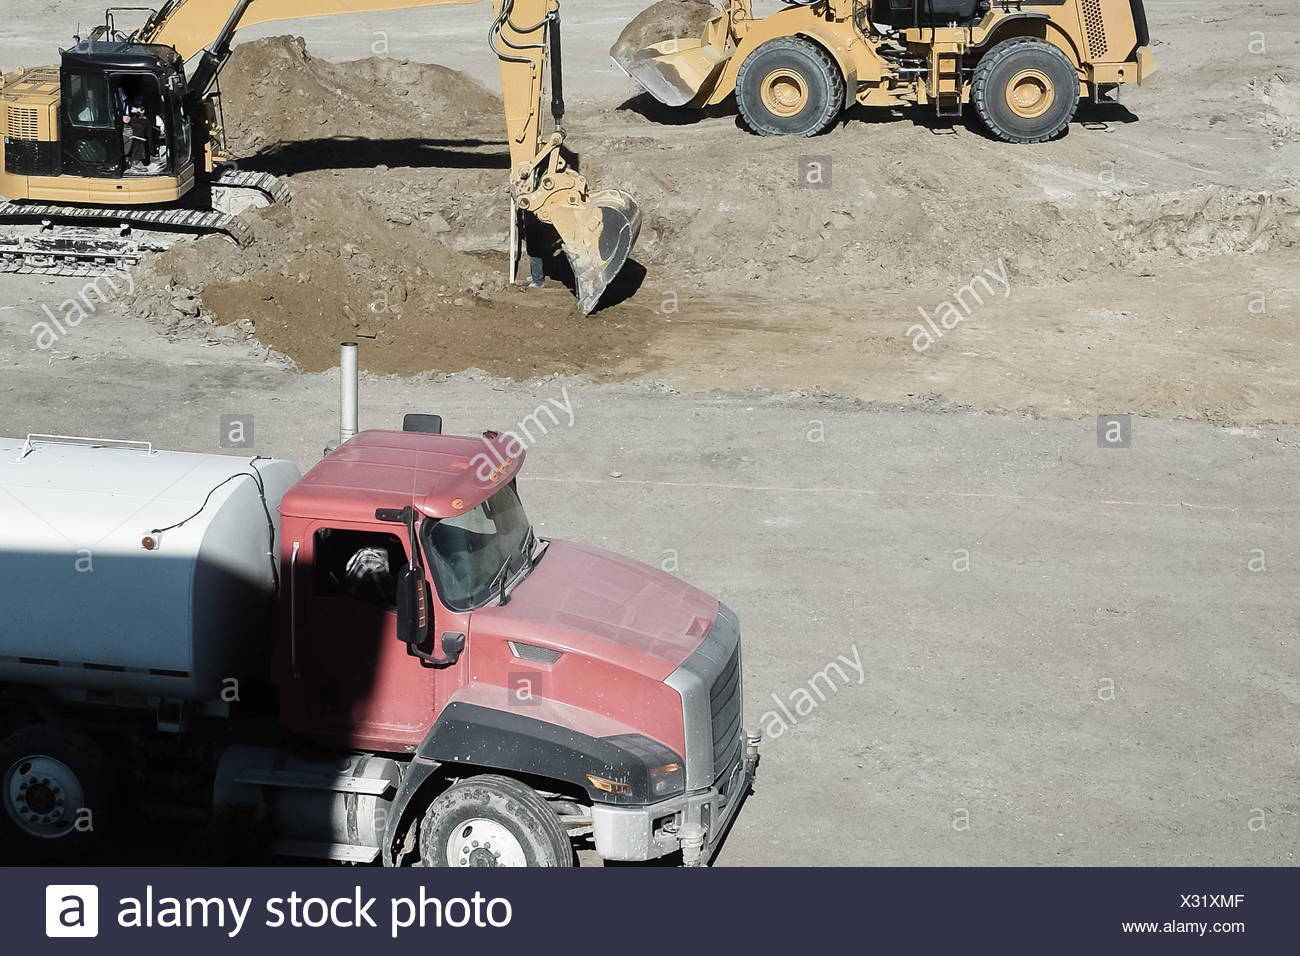 USA, Wyoming, Machinery on construction site - Stock Image